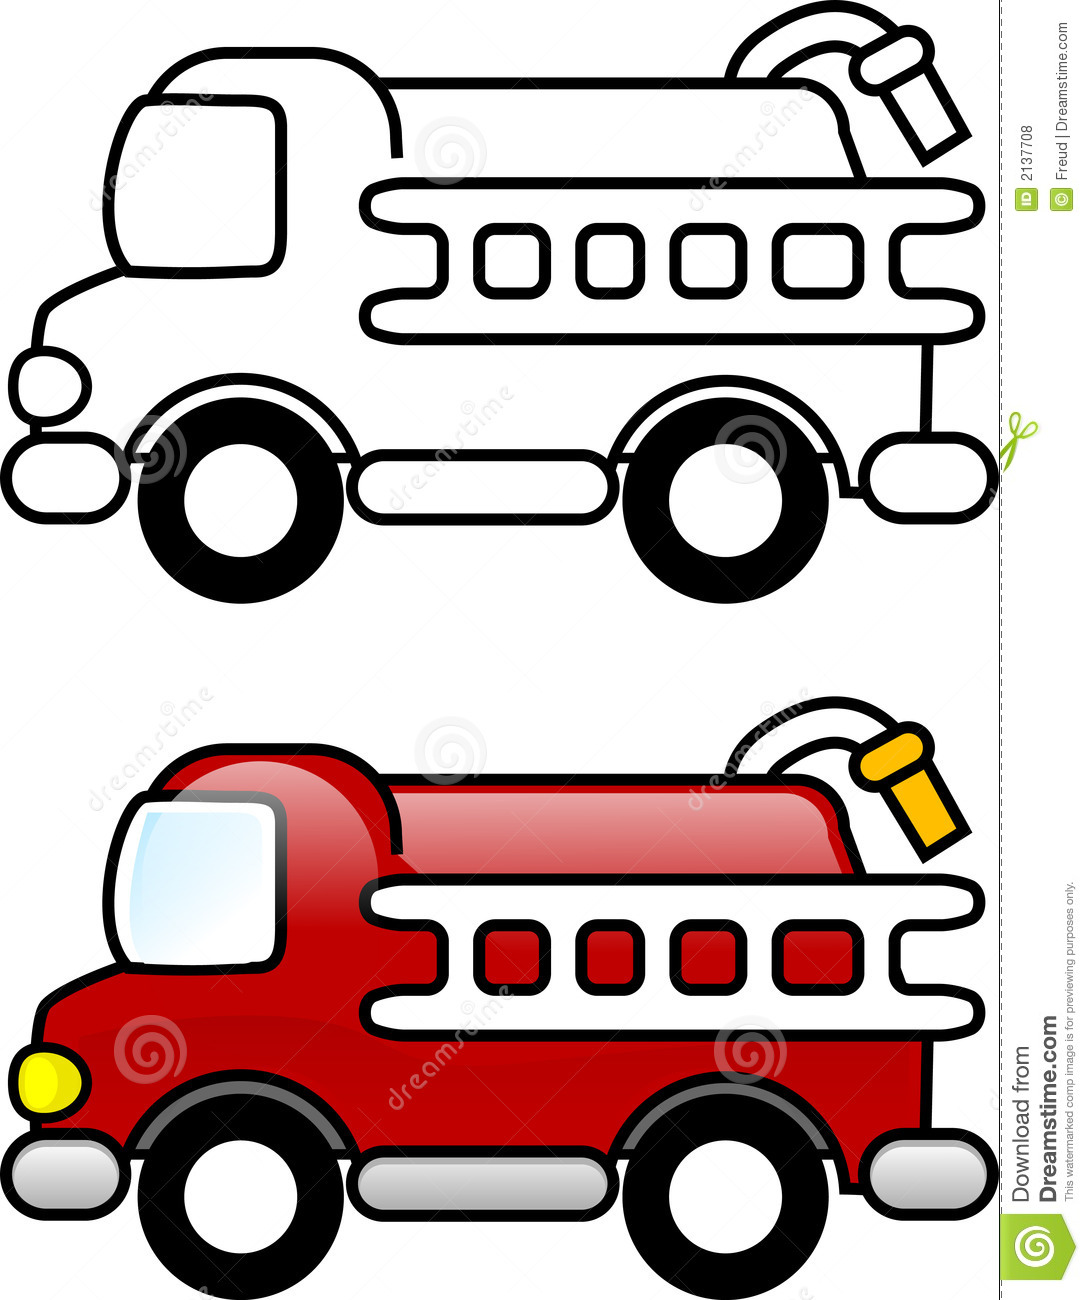 hight resolution of 1089x1300 free clipart fire truck fire truck clipart royalty free vector